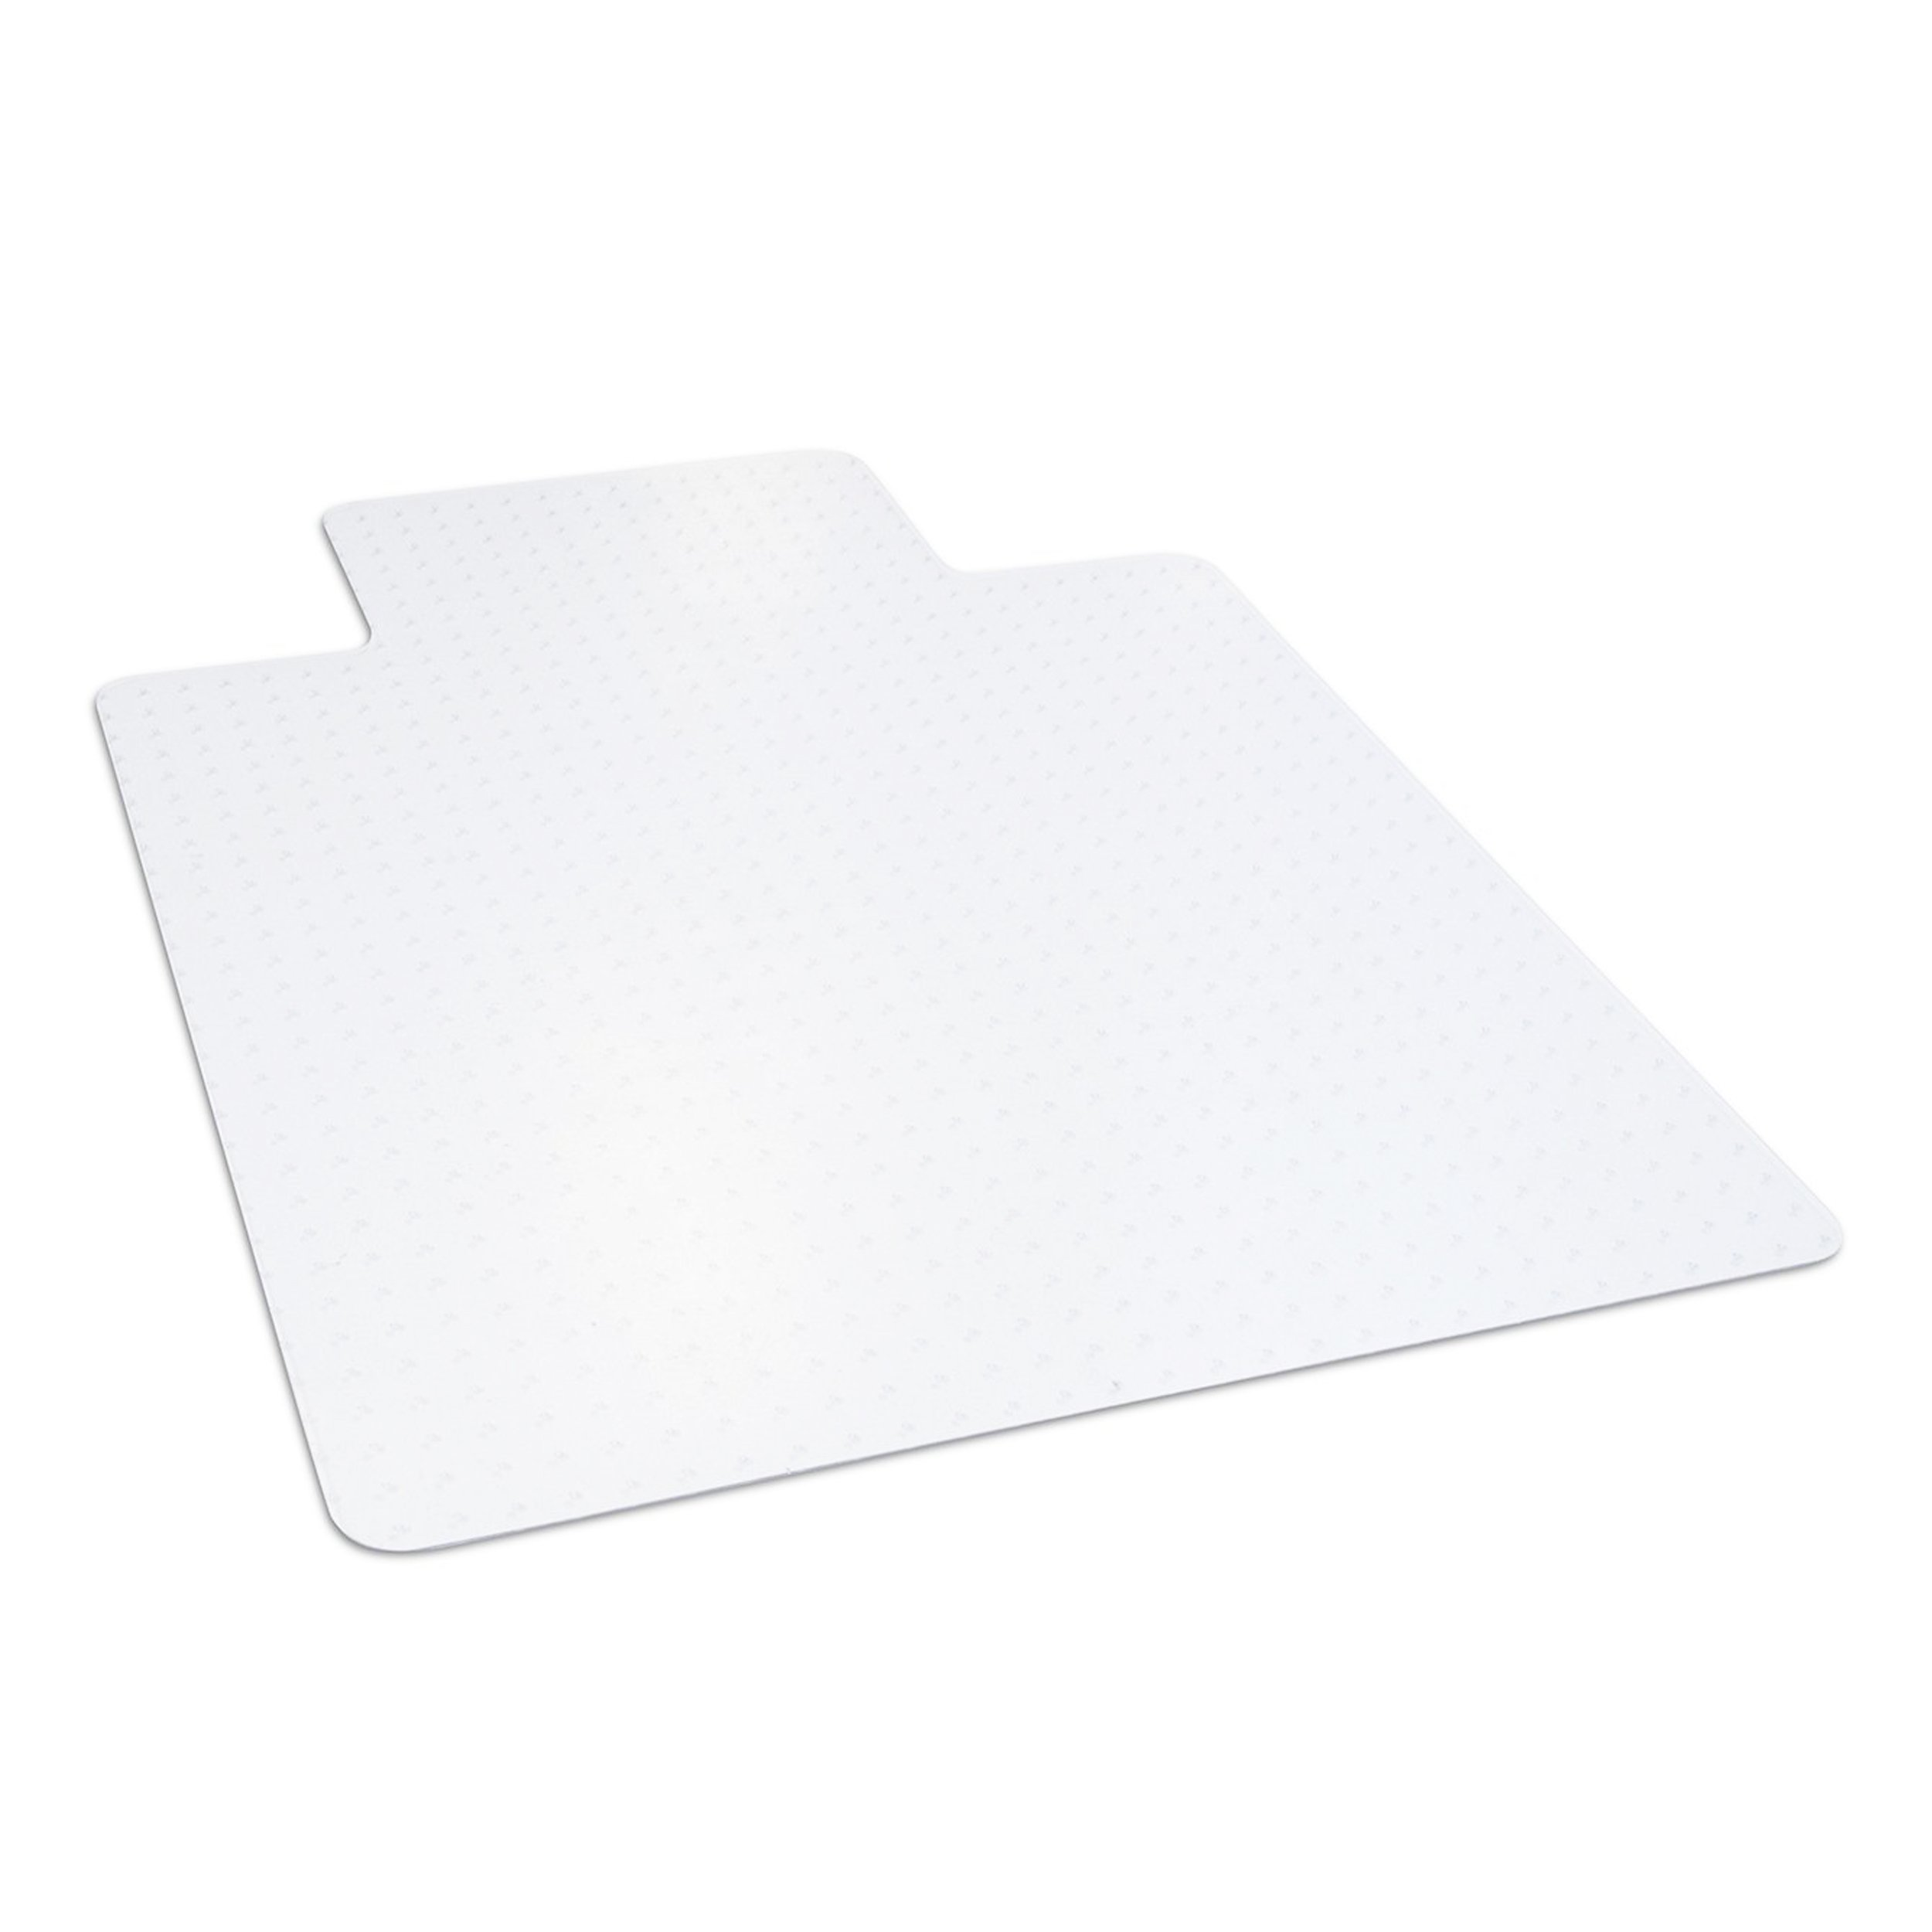 Dimex 36''x 48'' Clear Office Chair Mat with Lip for Low Pile Carpet, Made in The USA, BPA and Phthalate Free, C511001G